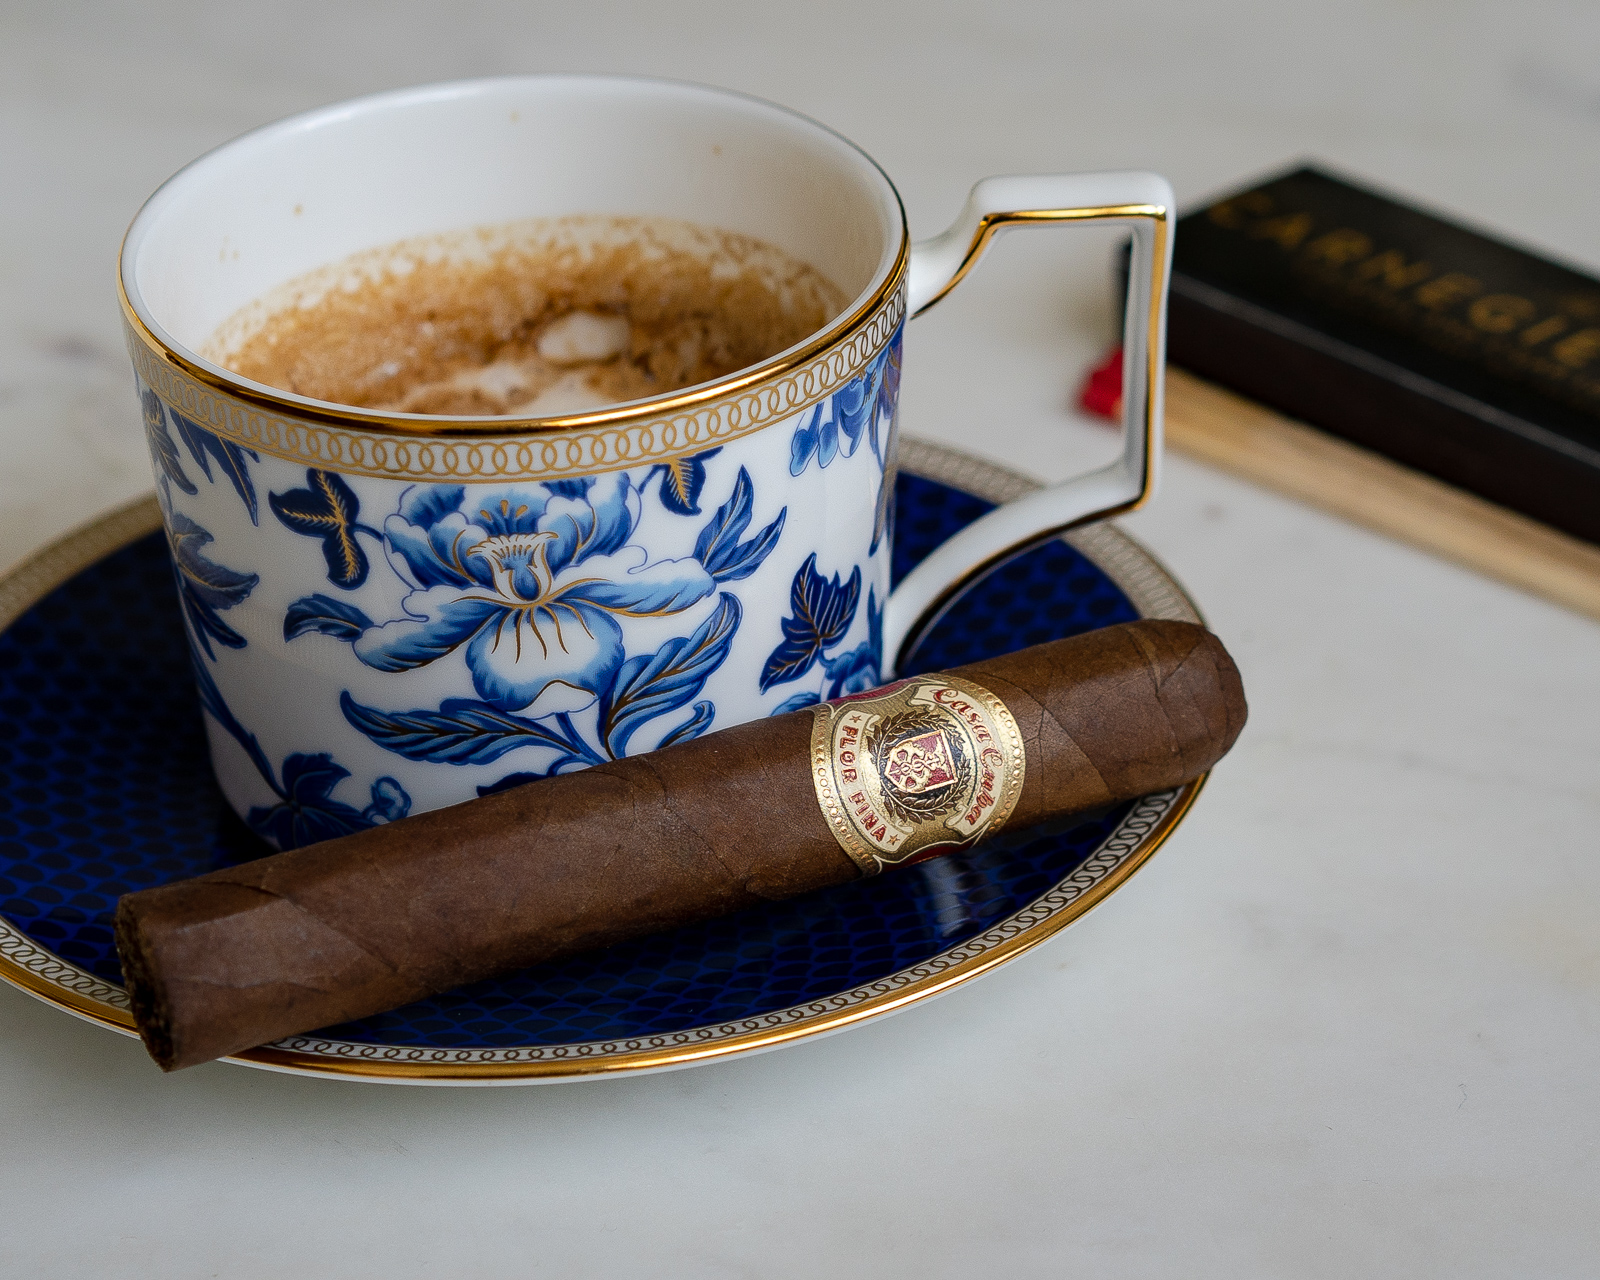 Arturo Fuente Casa Cuba Doble Cinco review